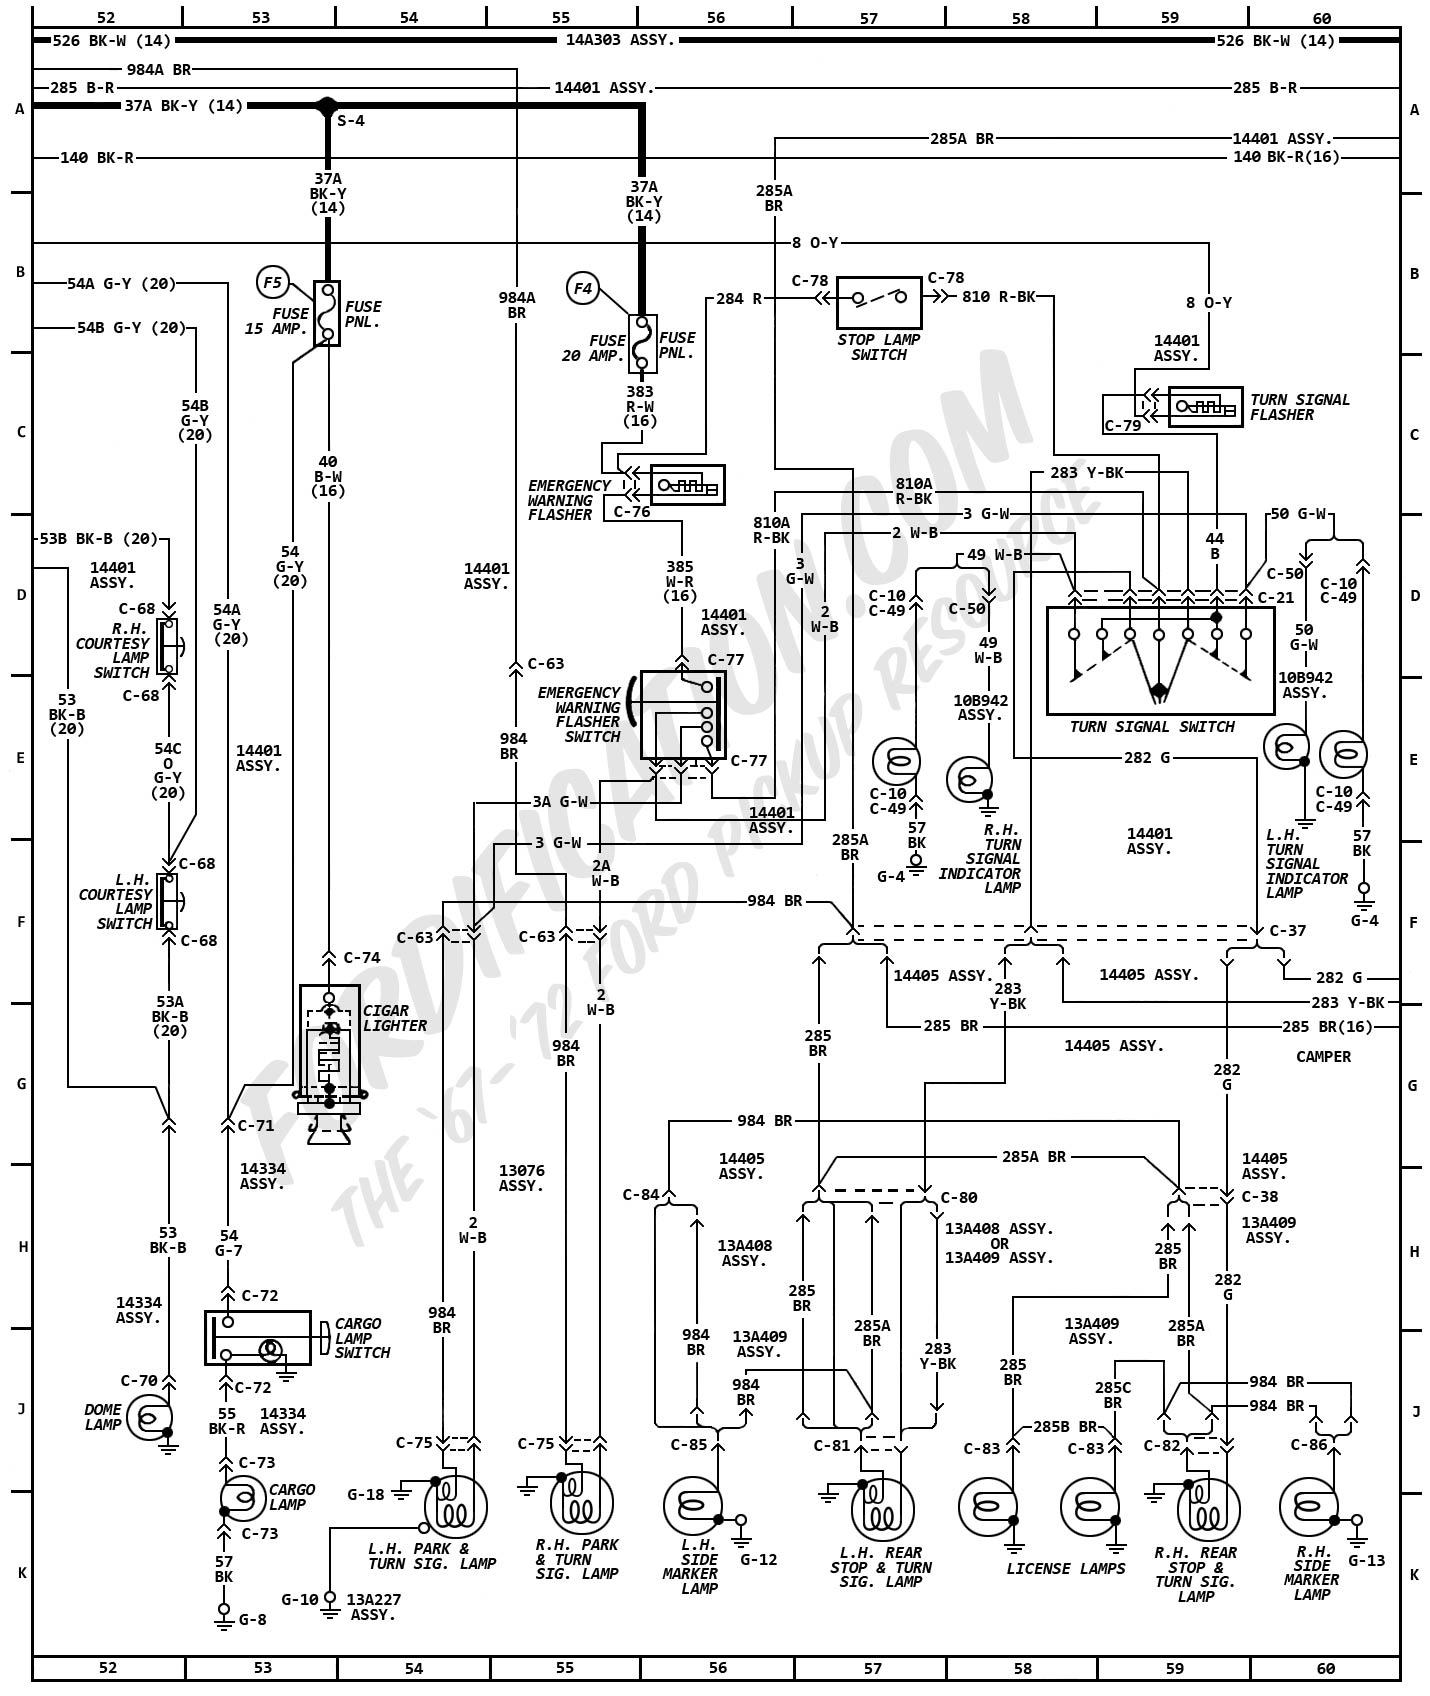 1971 ford f100 ignition switch wiring diagram